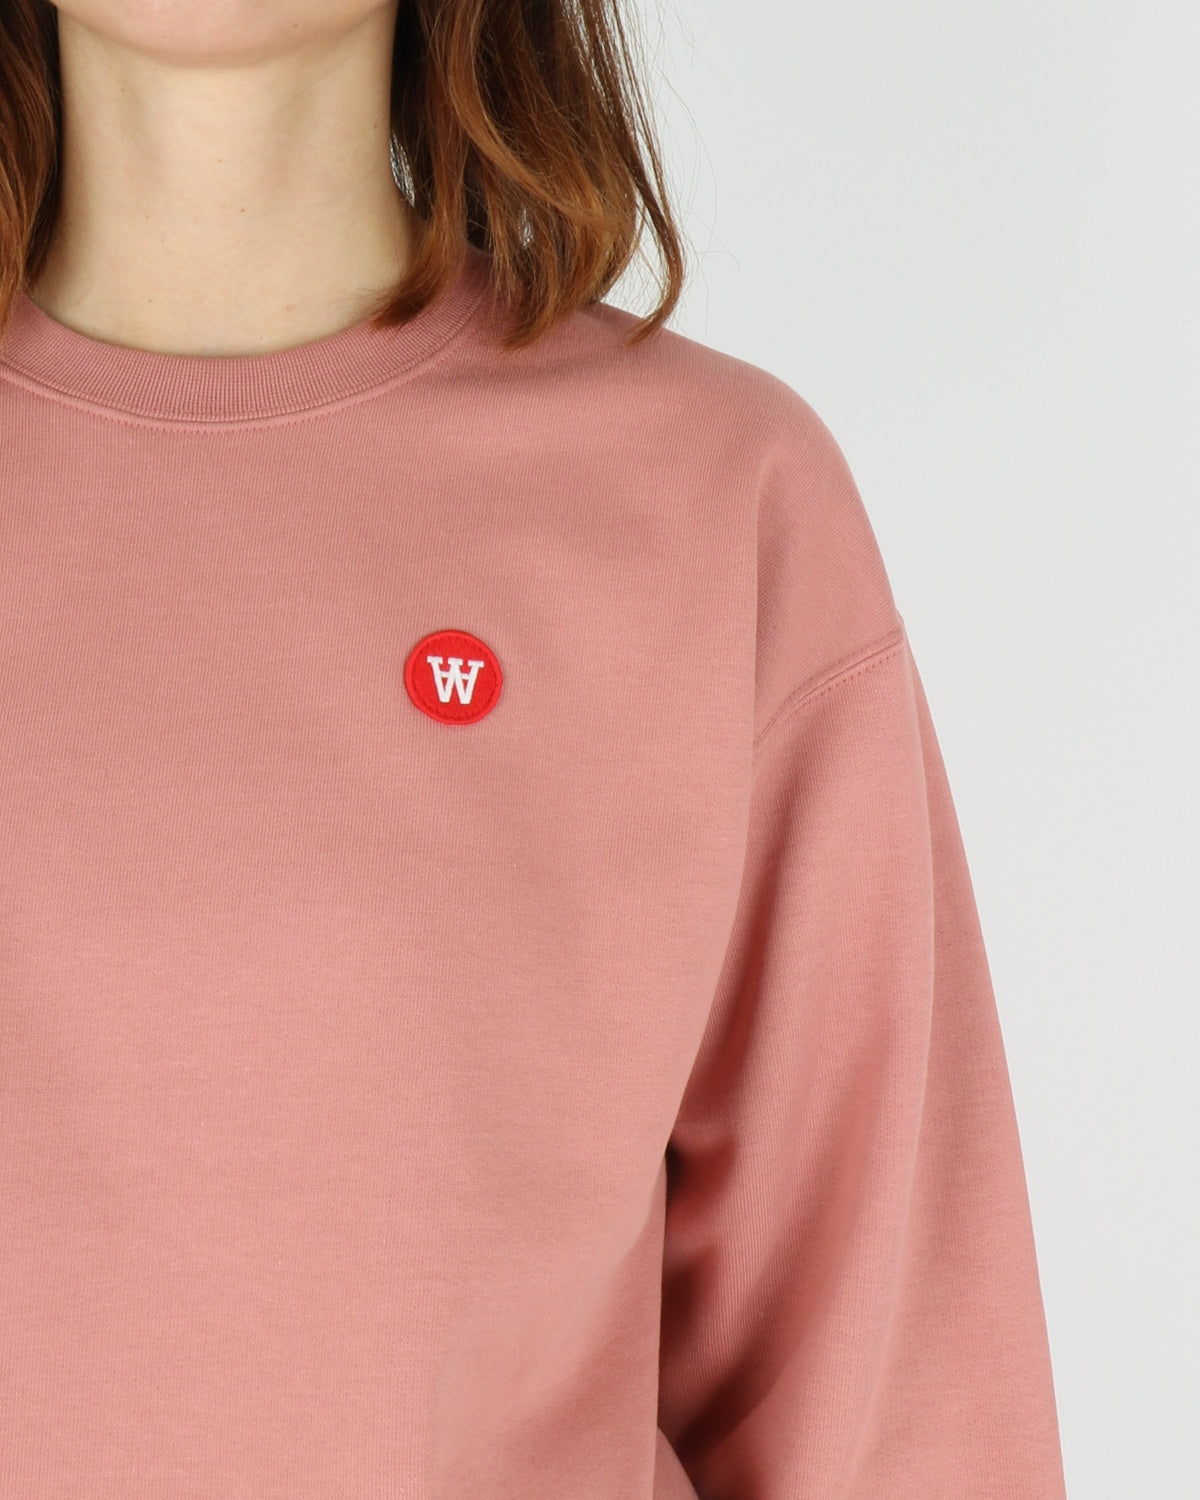 wood wood_jess sweatshirt_dark rose_view_3_3